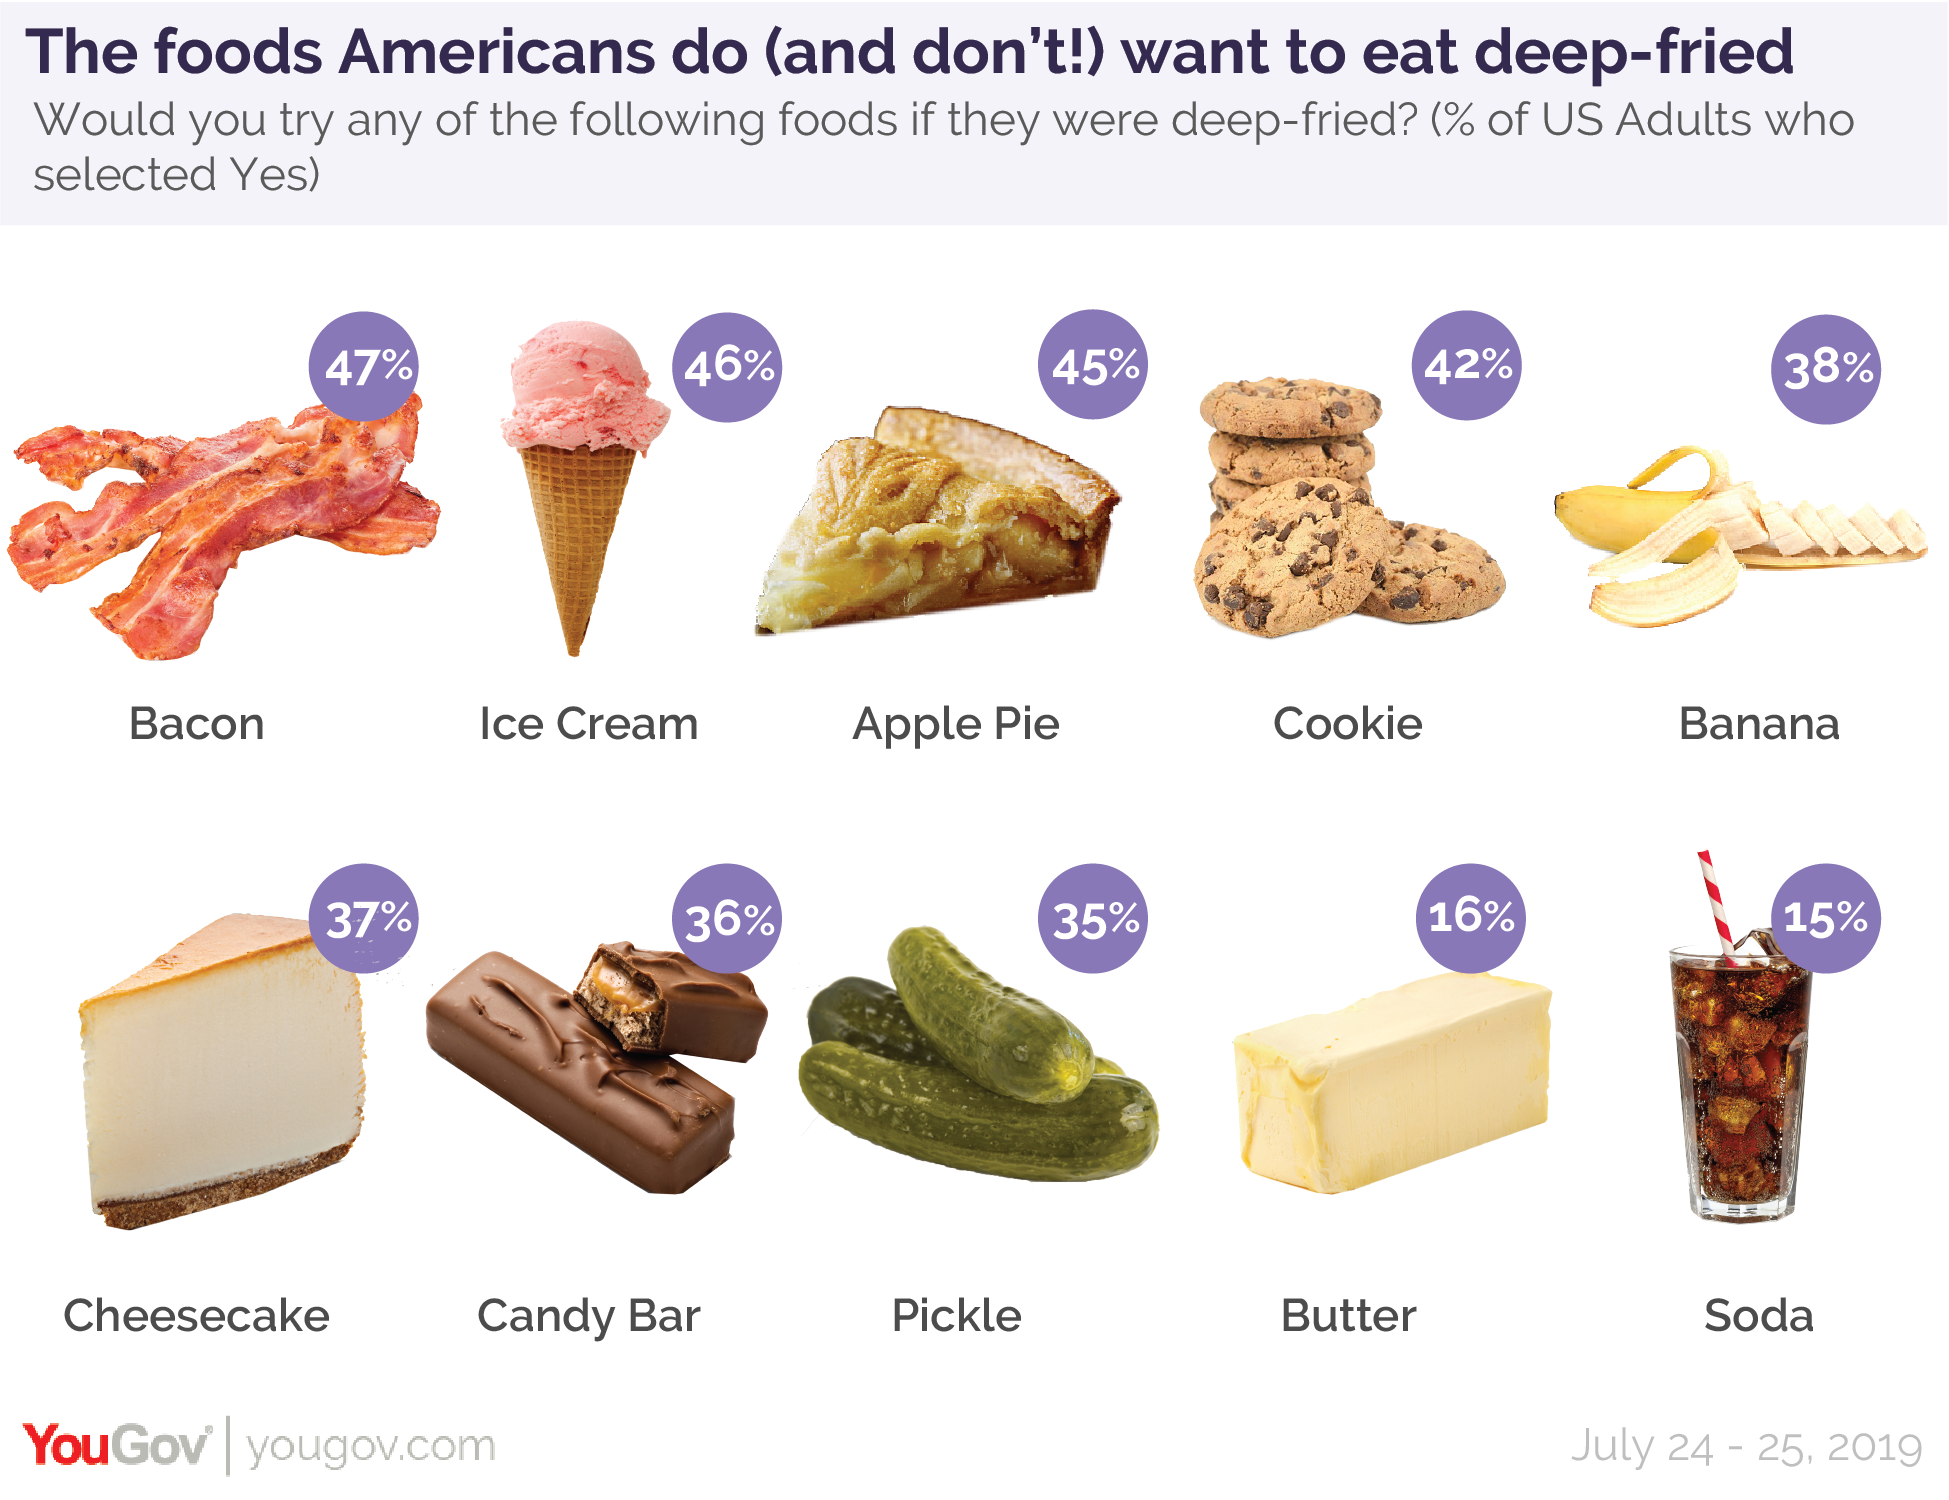 The foods Americans do and don't want to eat deep fried